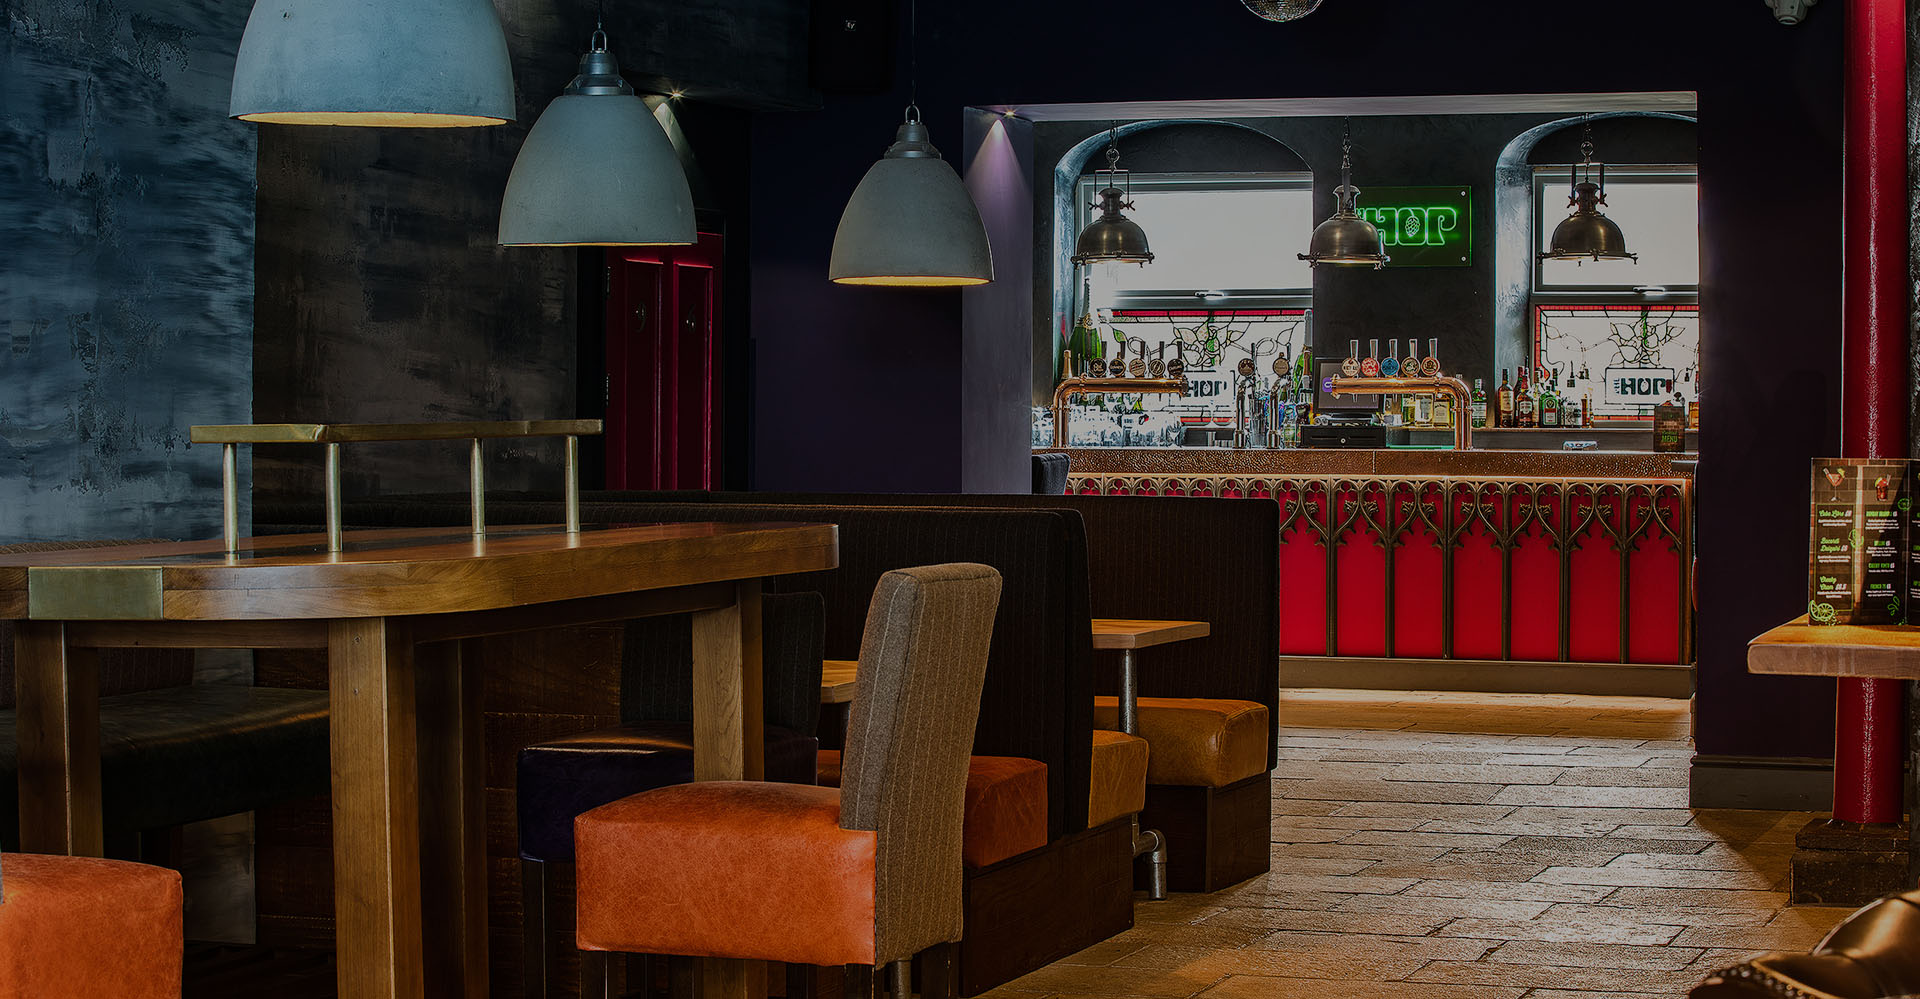 interior shot of the weekend bar at The Hop in Wakefield, our So Choir in Wakefield venue